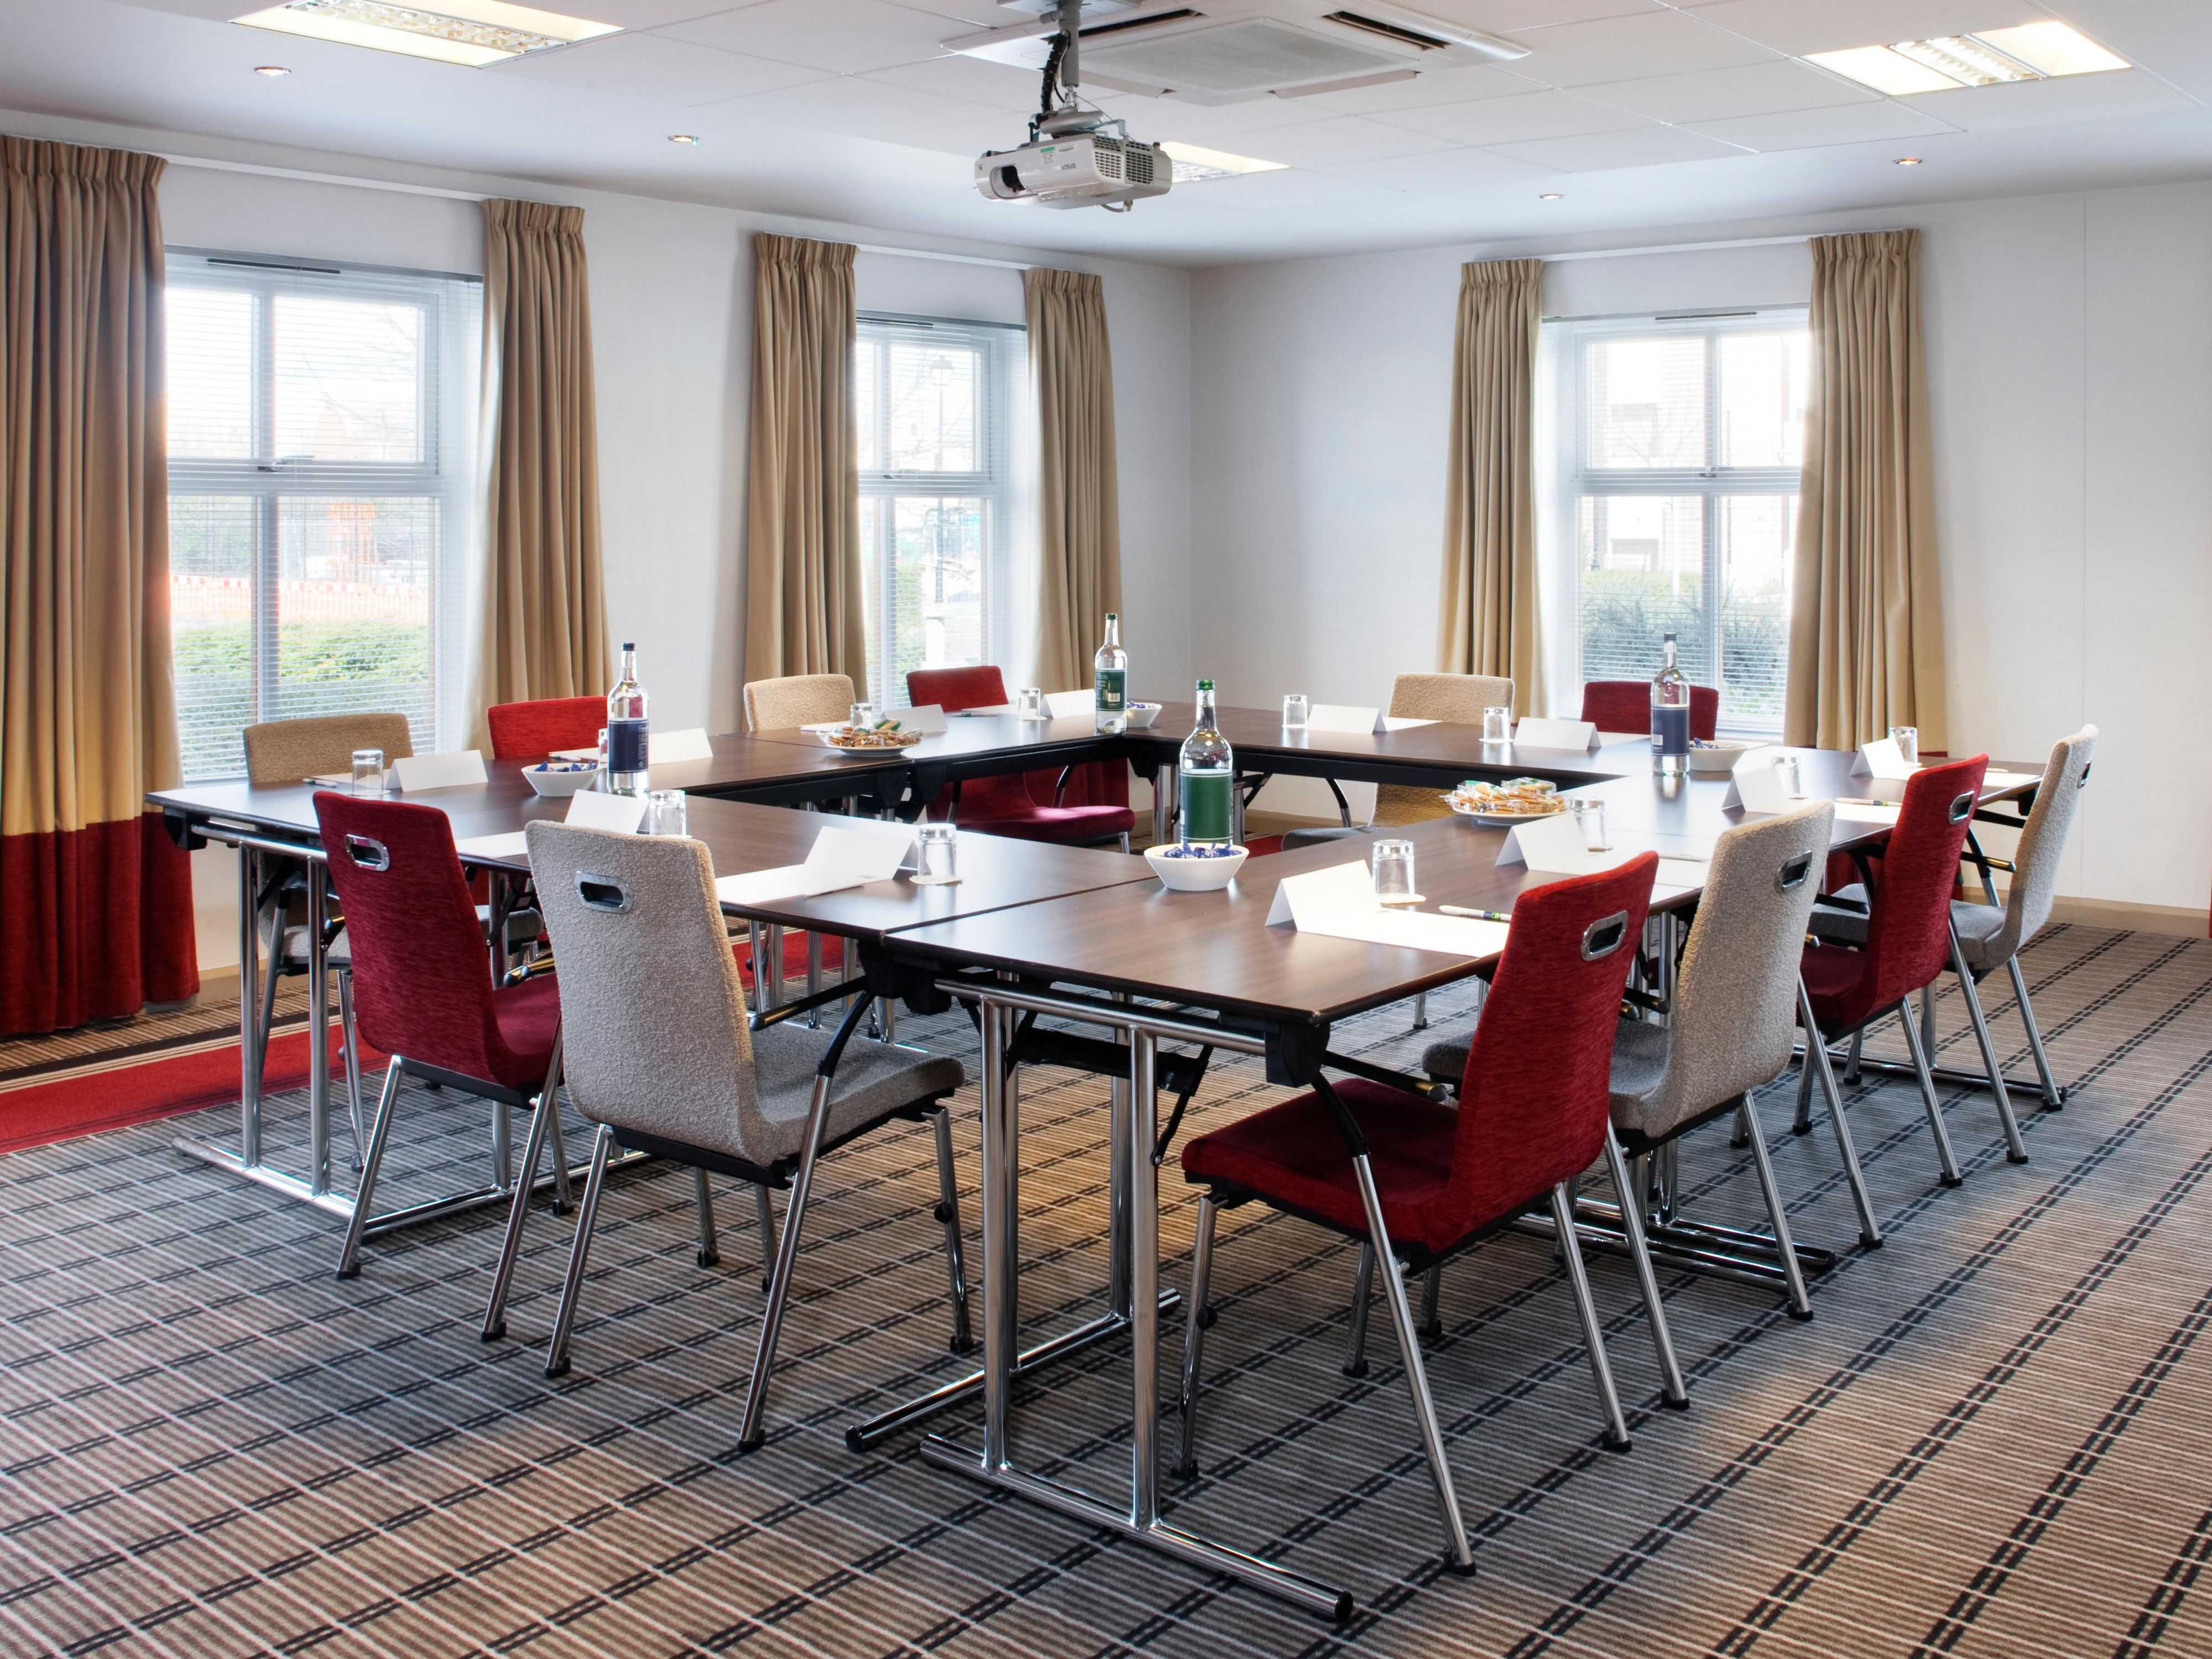 Holiday Inn Express Bristol North's meeting room facilities